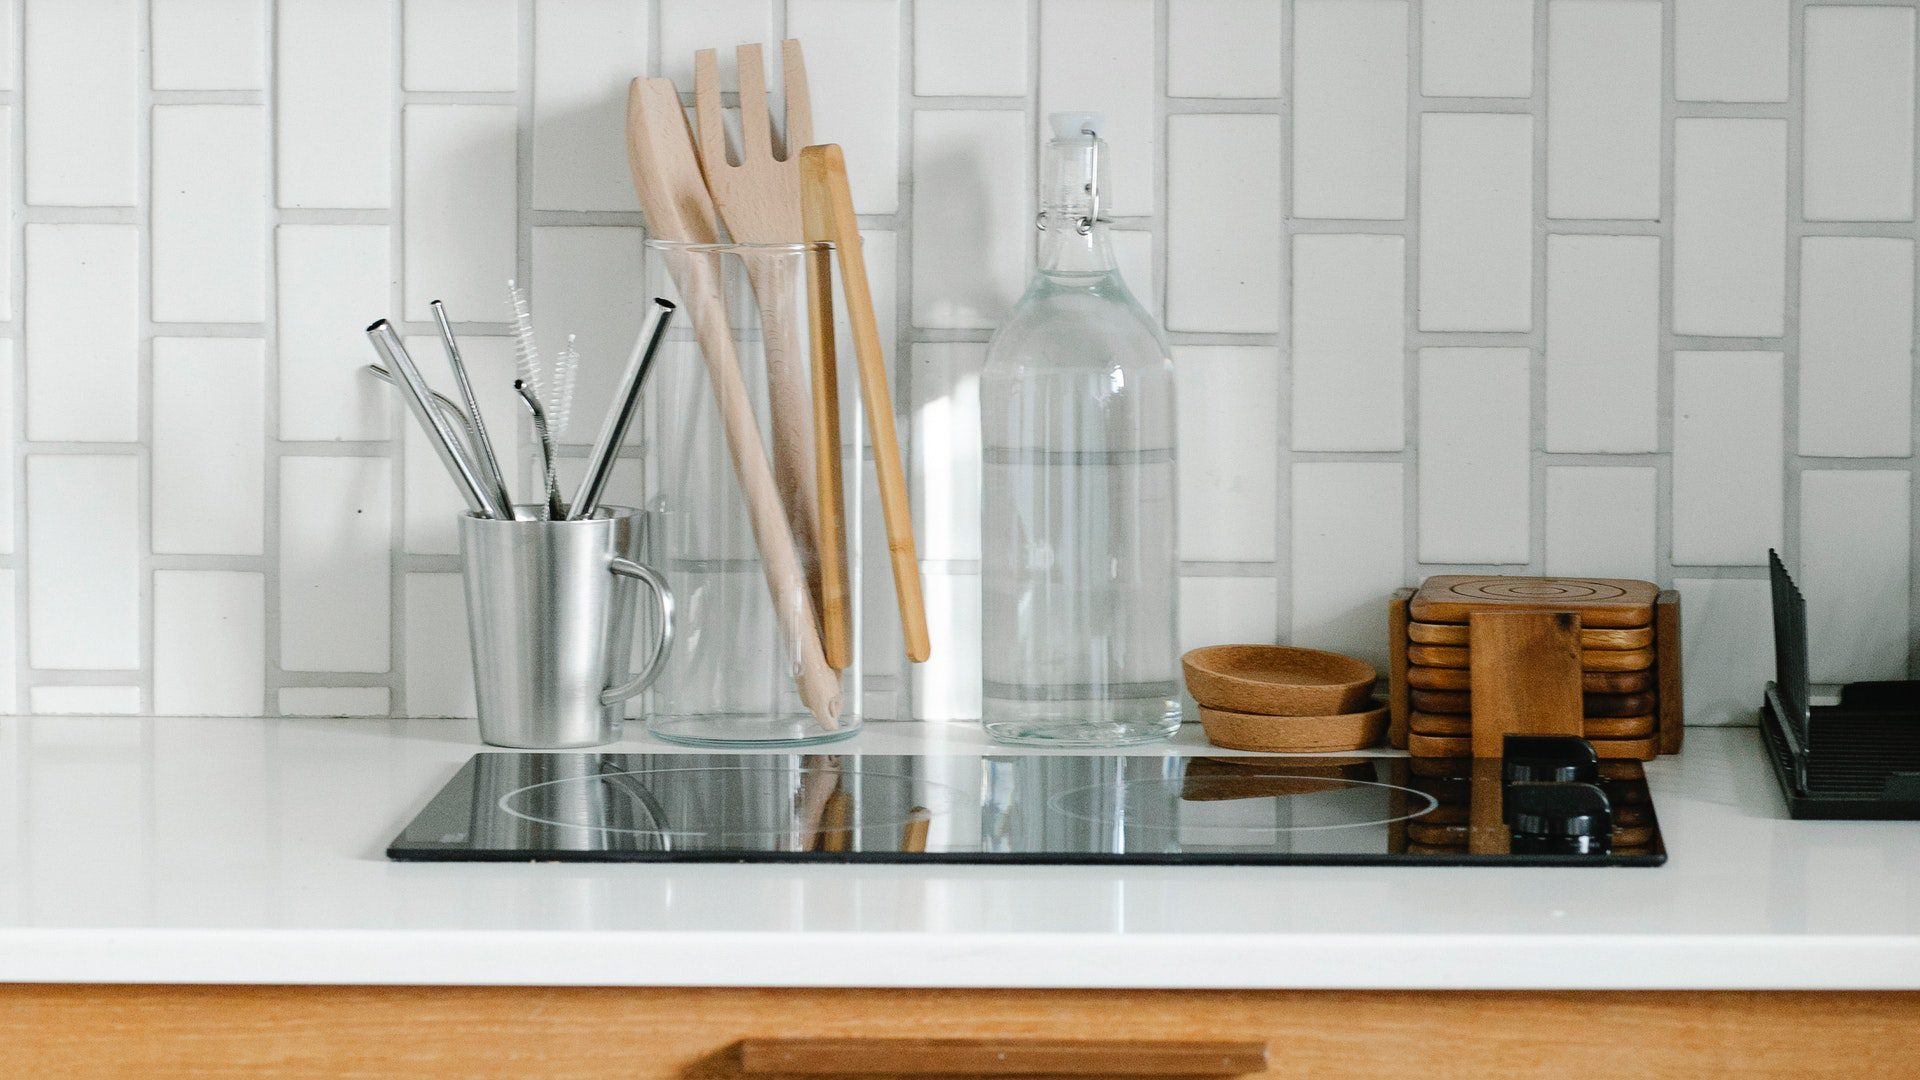 How to Clean a Glass-Top Stove